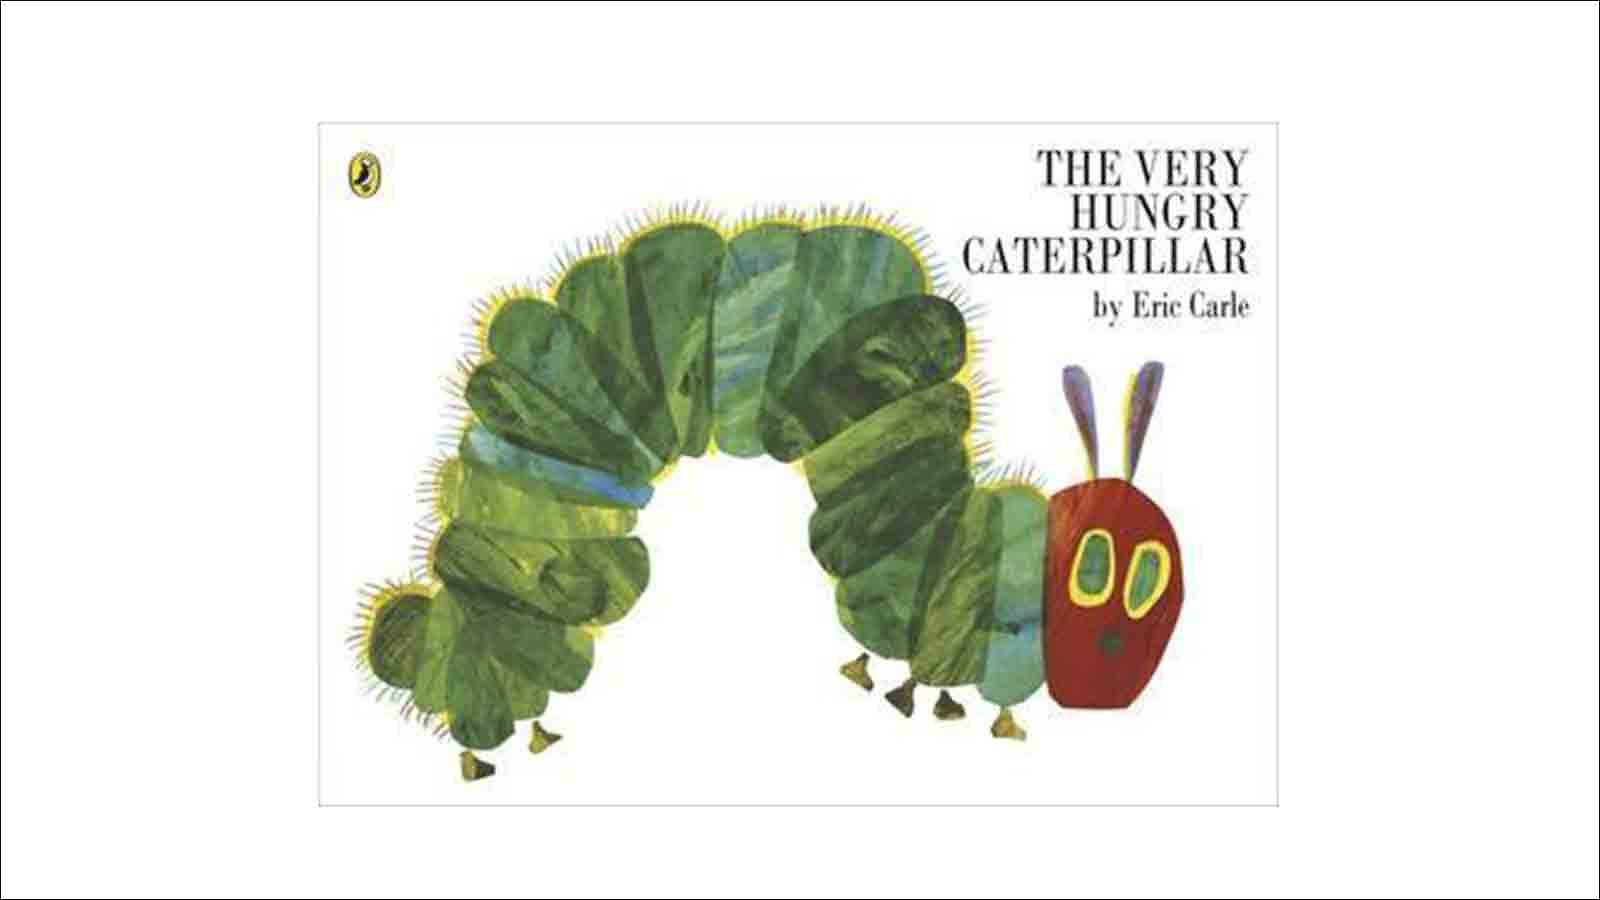 Tots-BUYER'S-GUIDE-10-Must-read-books-THE-VERY-HUNGRY-CATERPILLAR